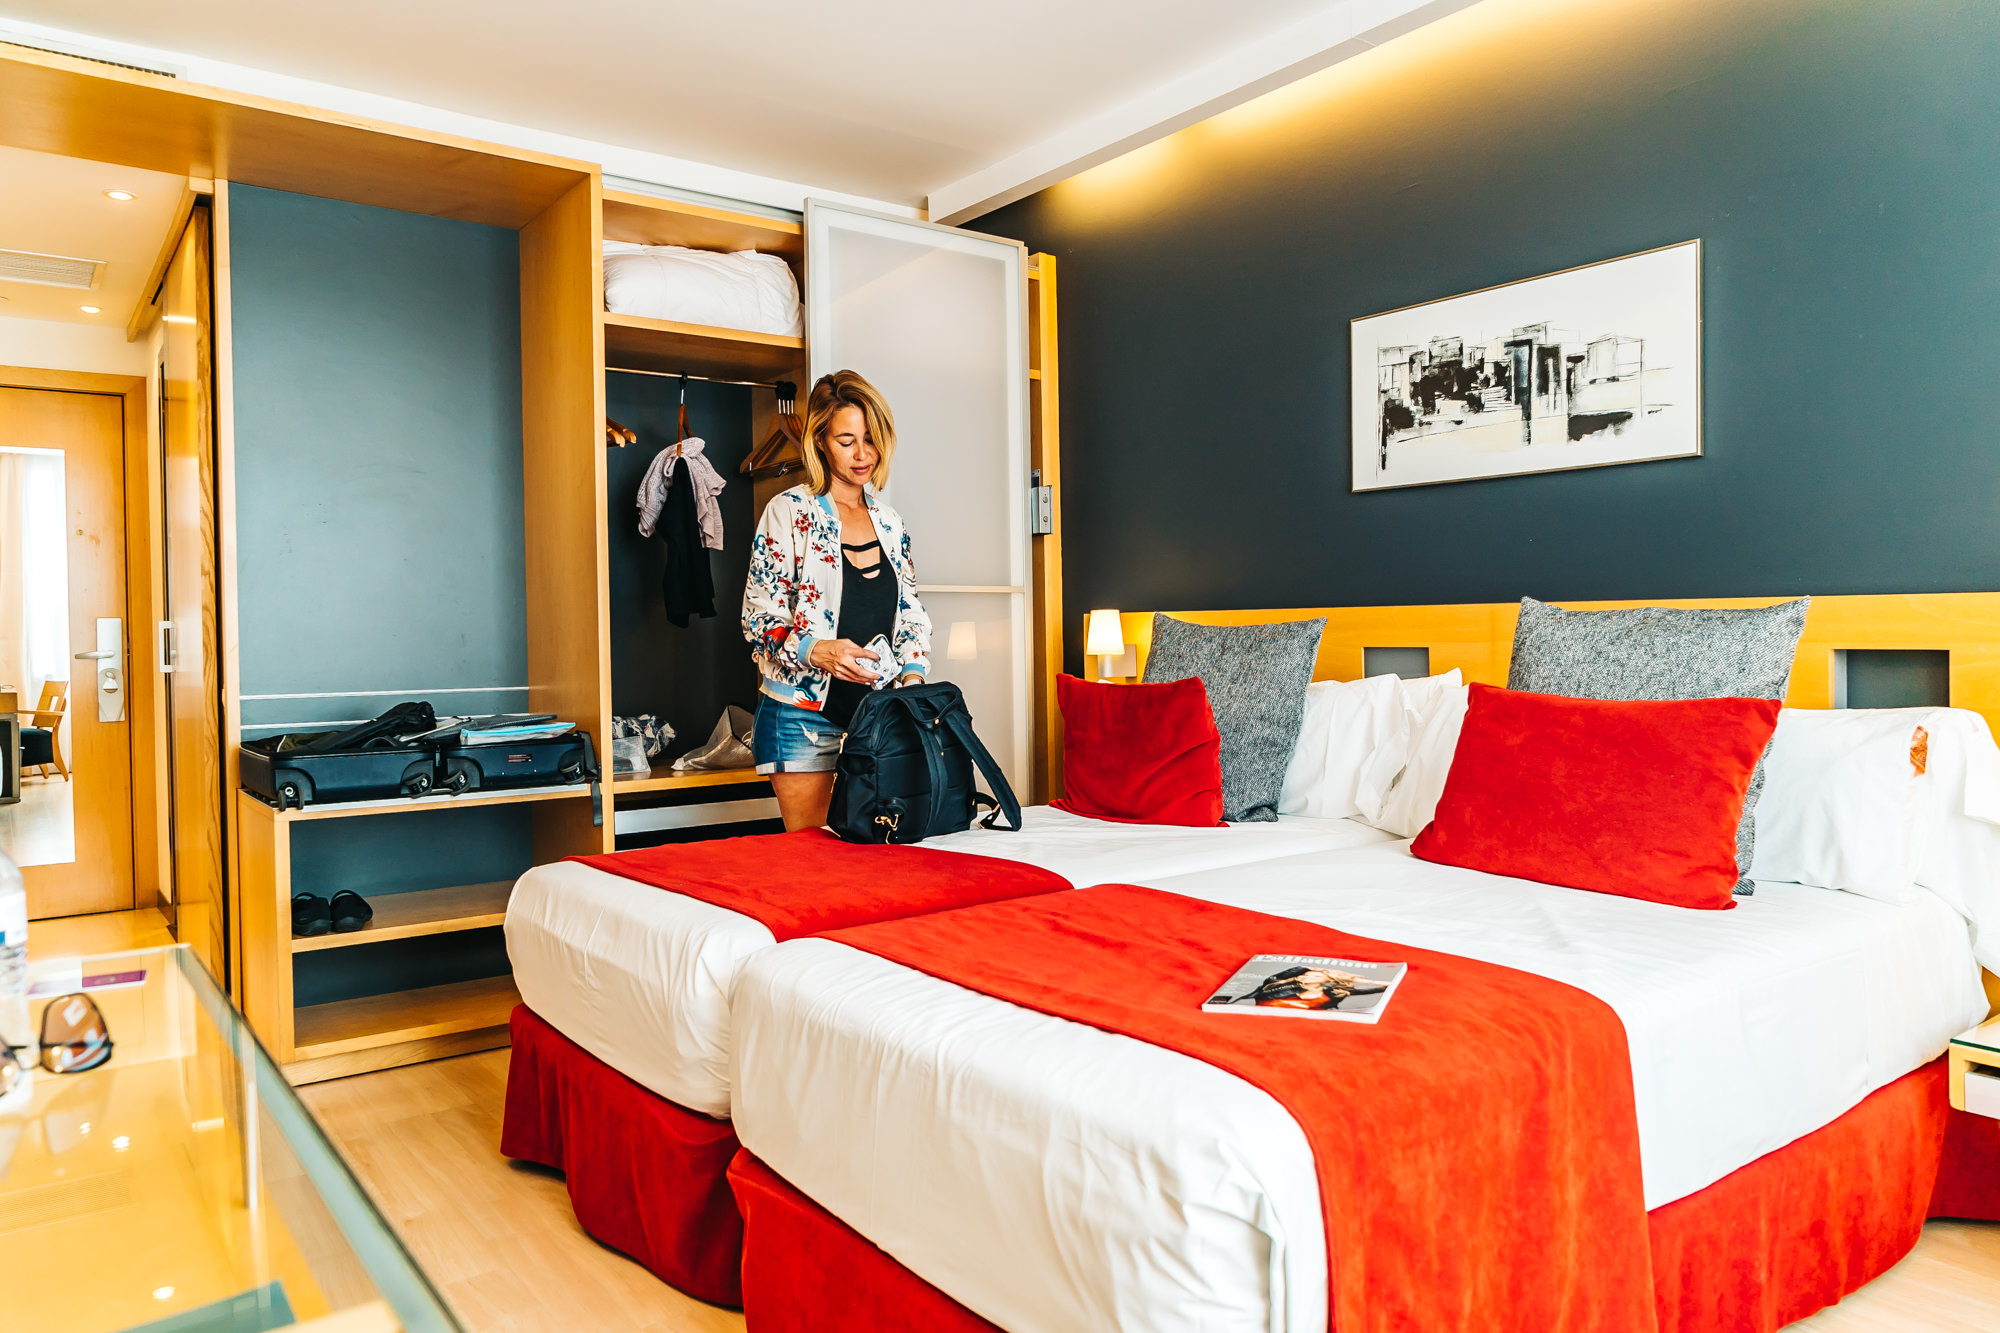 Modern, clean and spacious room at Ayre Hotel Caspe